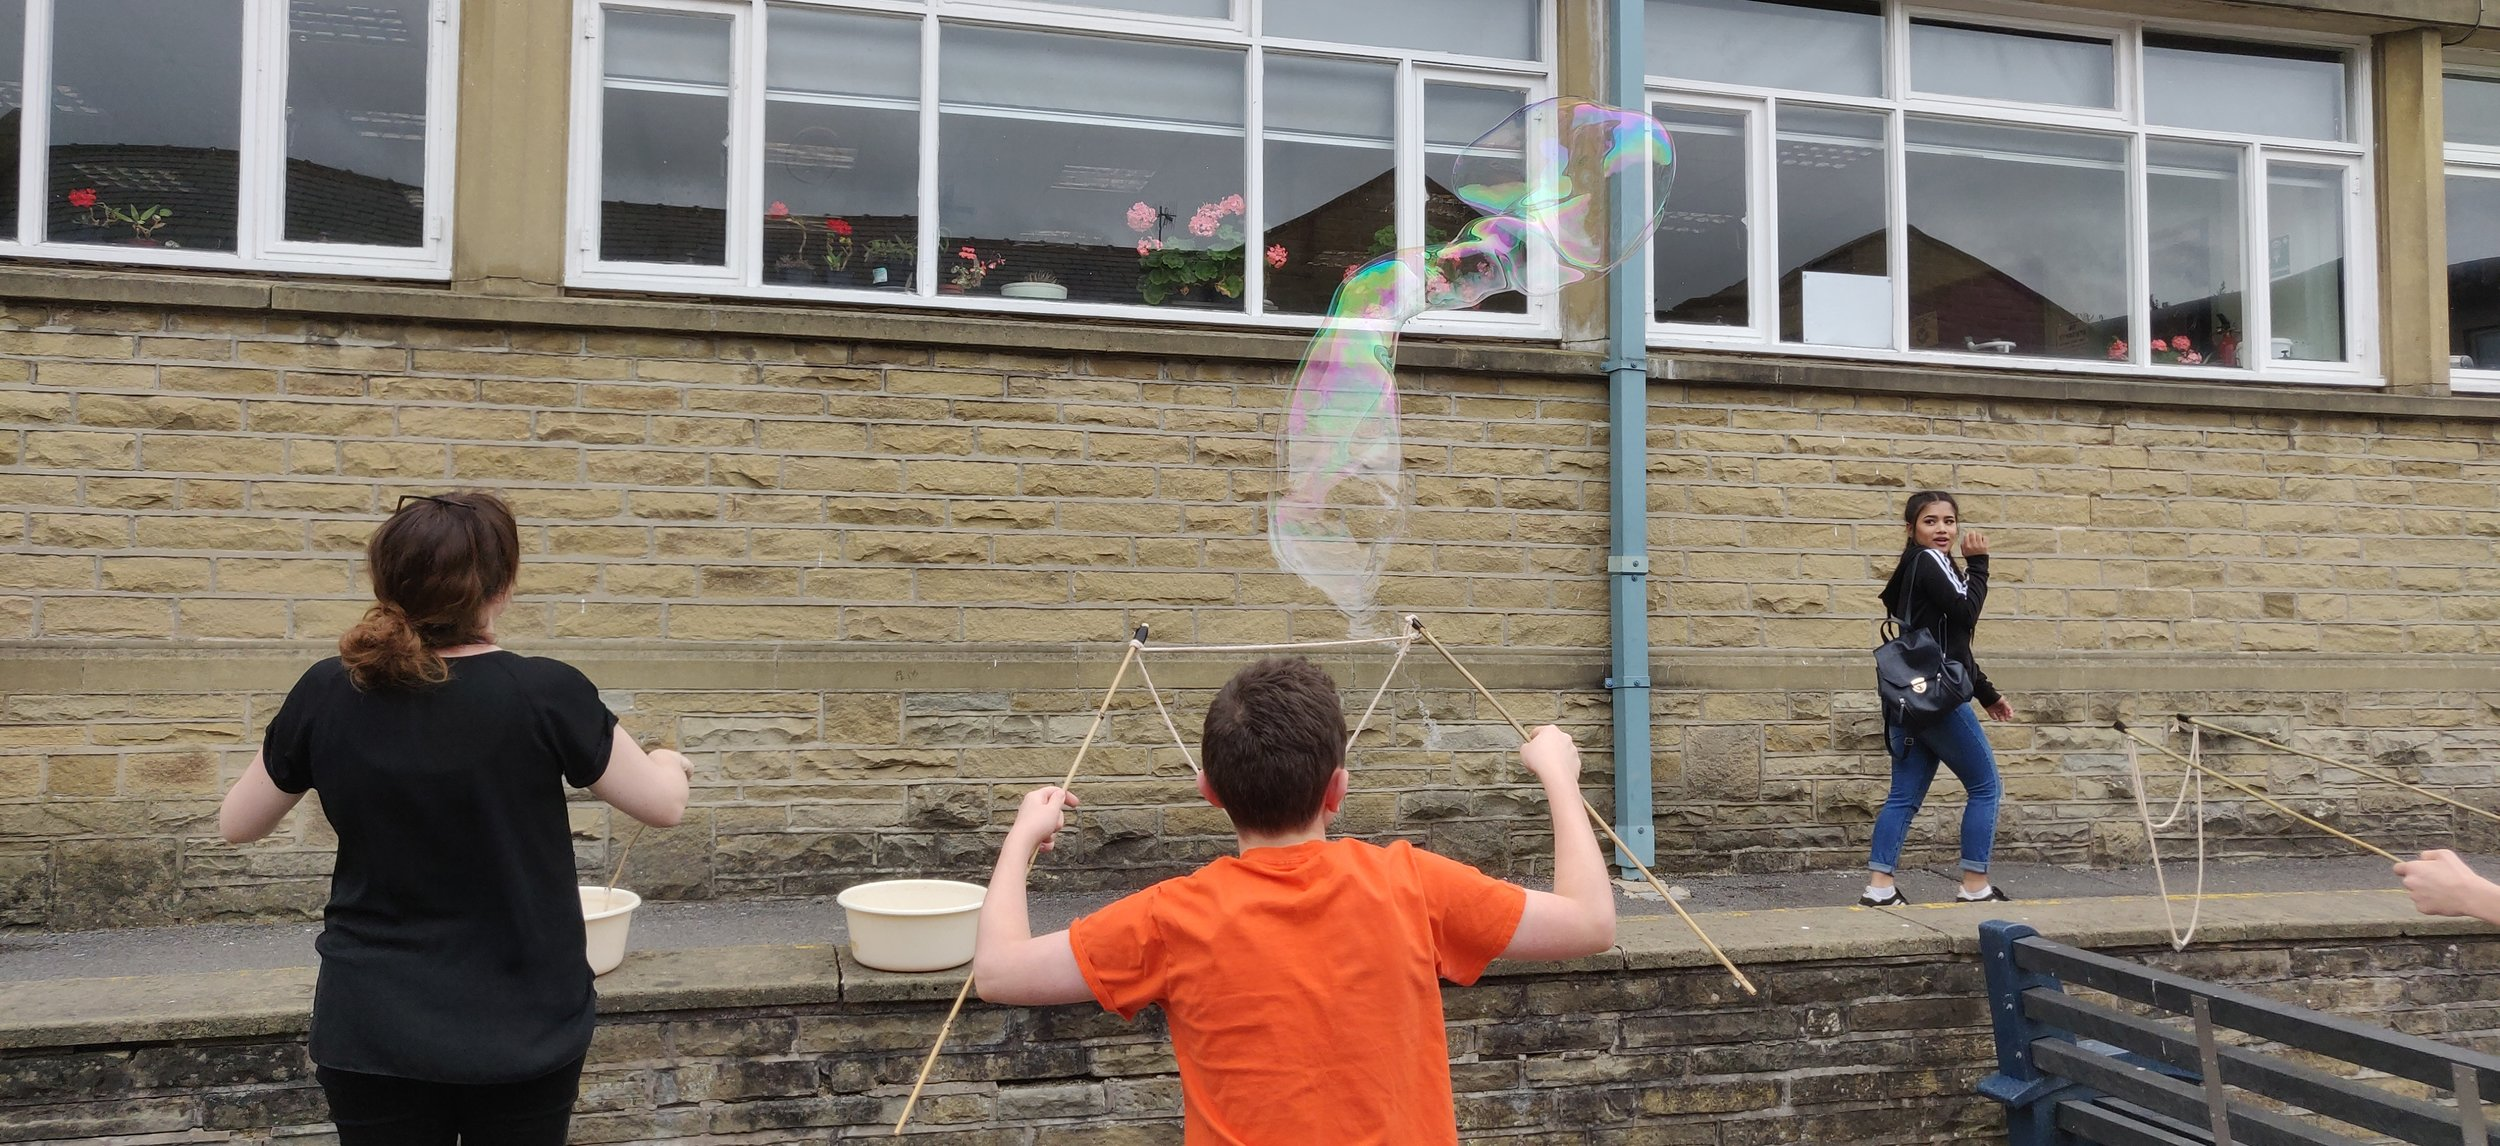 Making Giant Bubbles